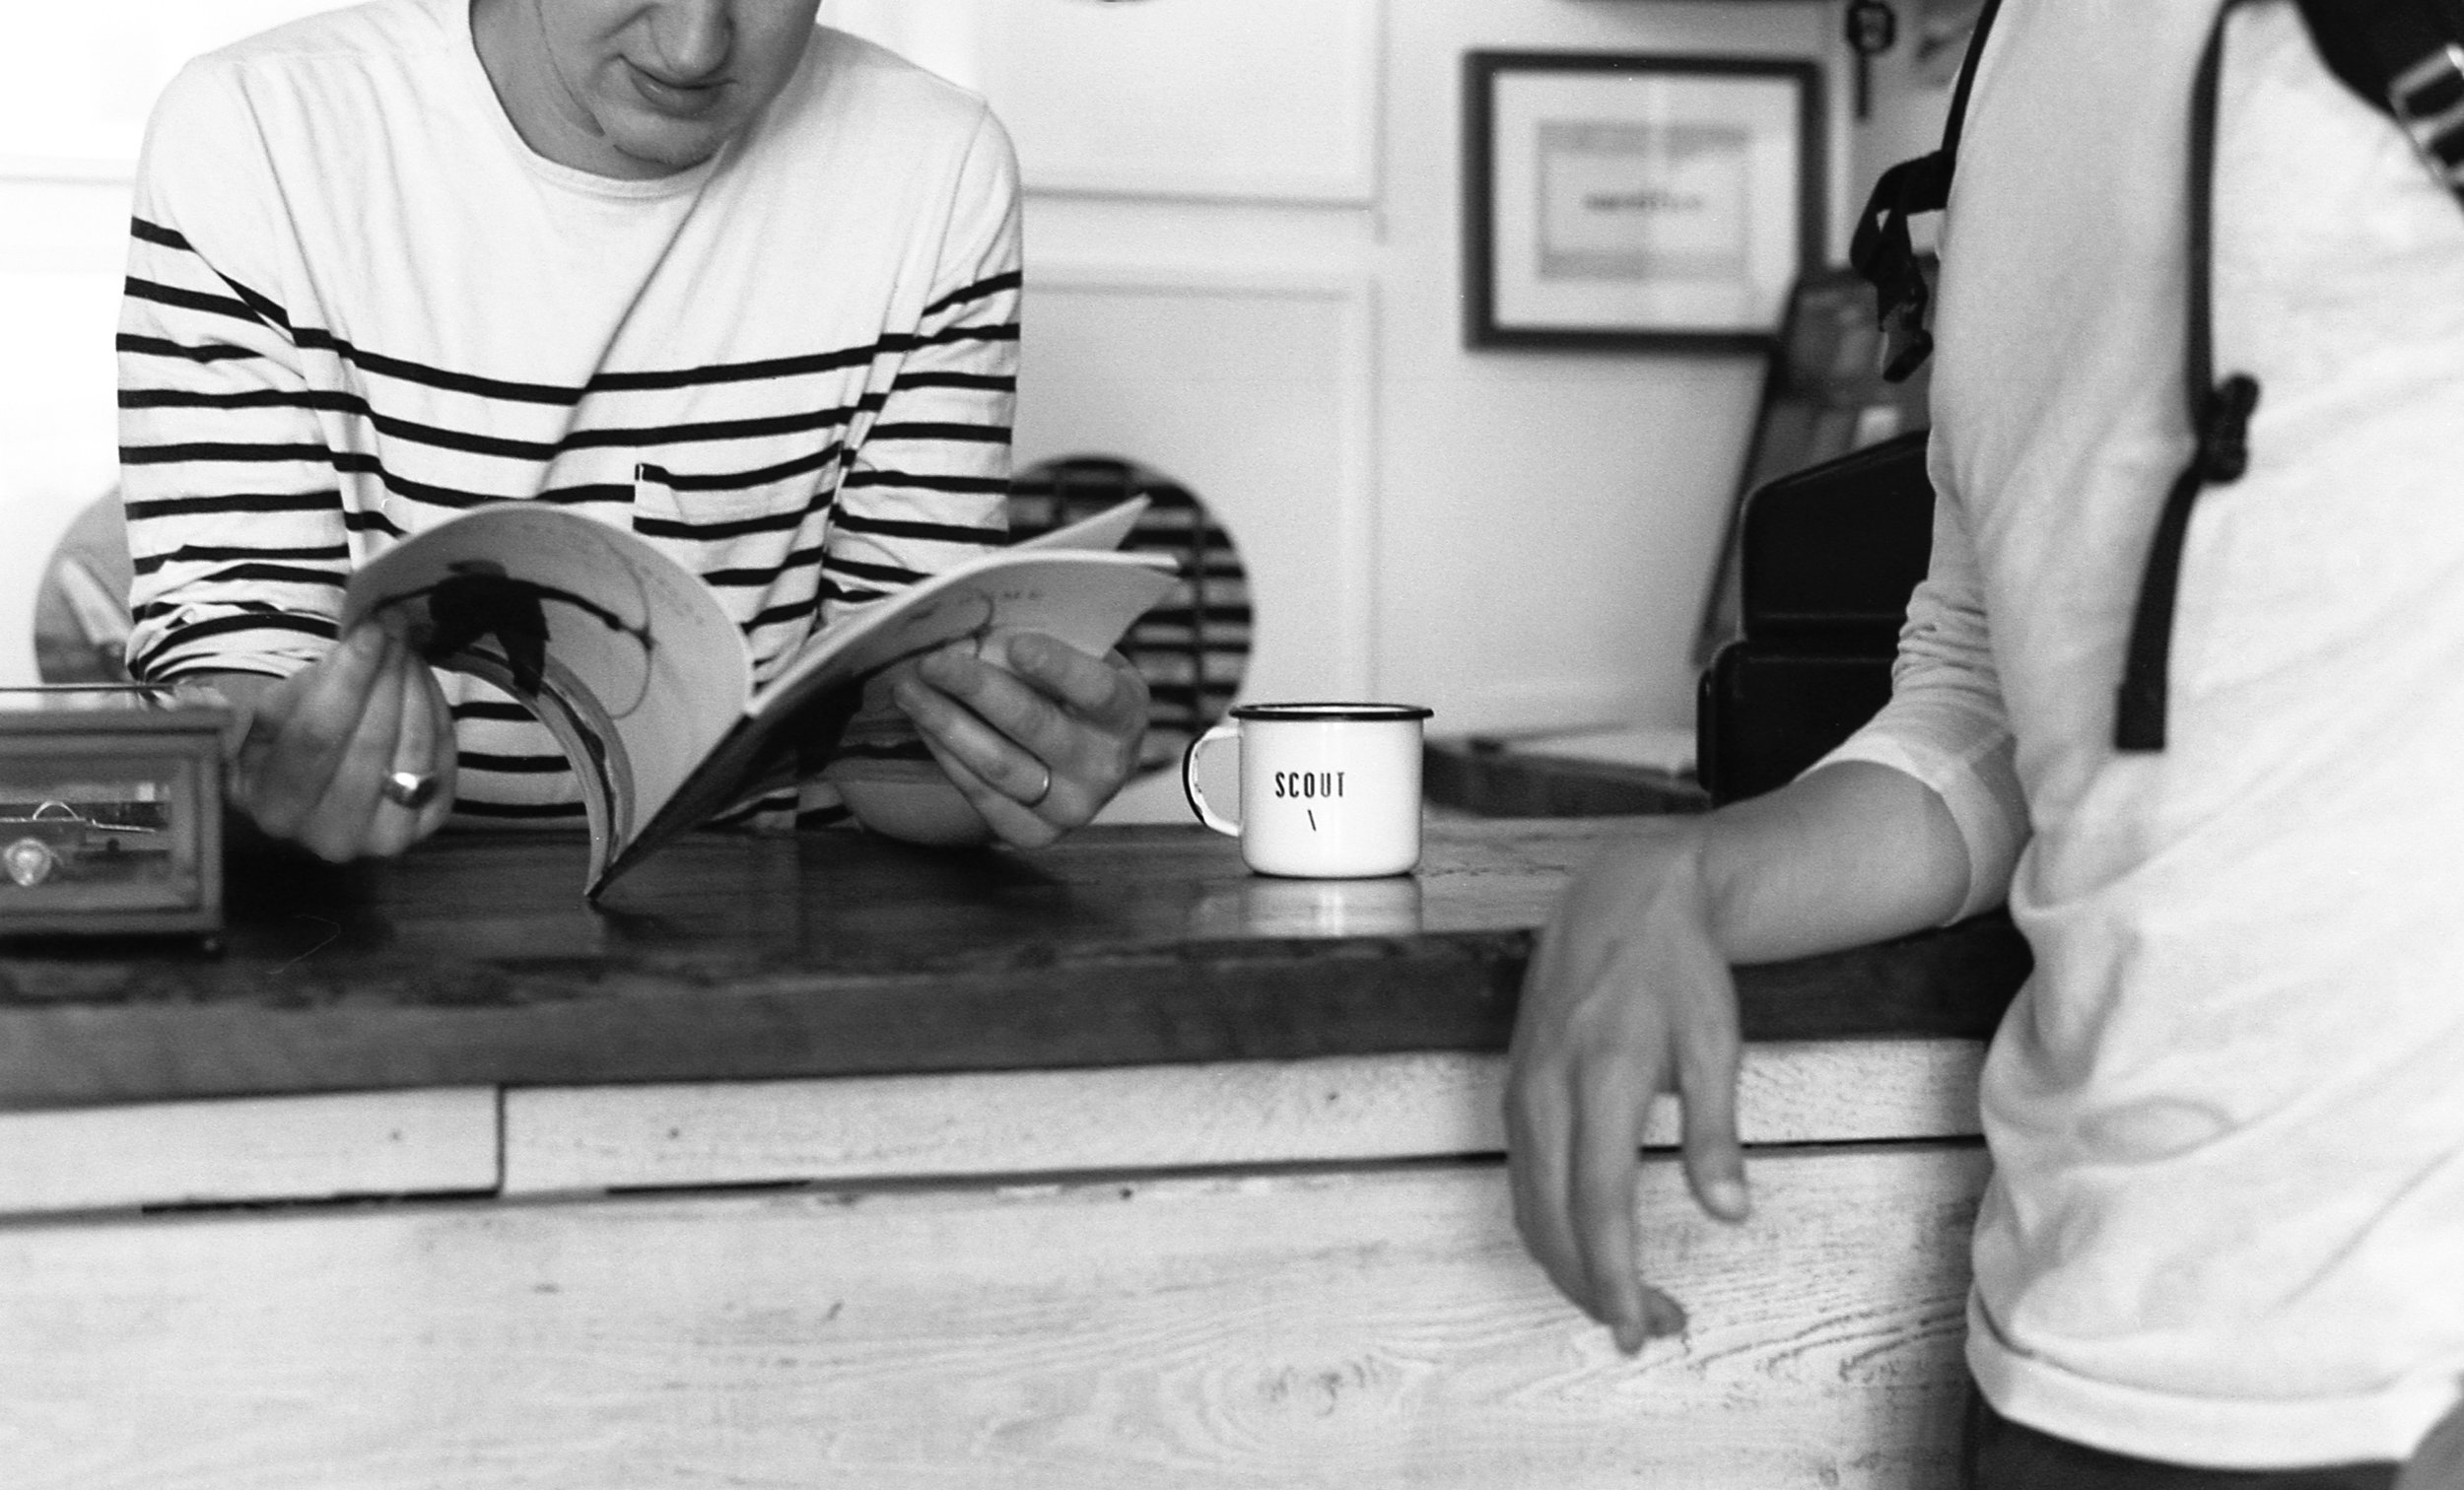 Two people lean on a counter, one reads a magazine